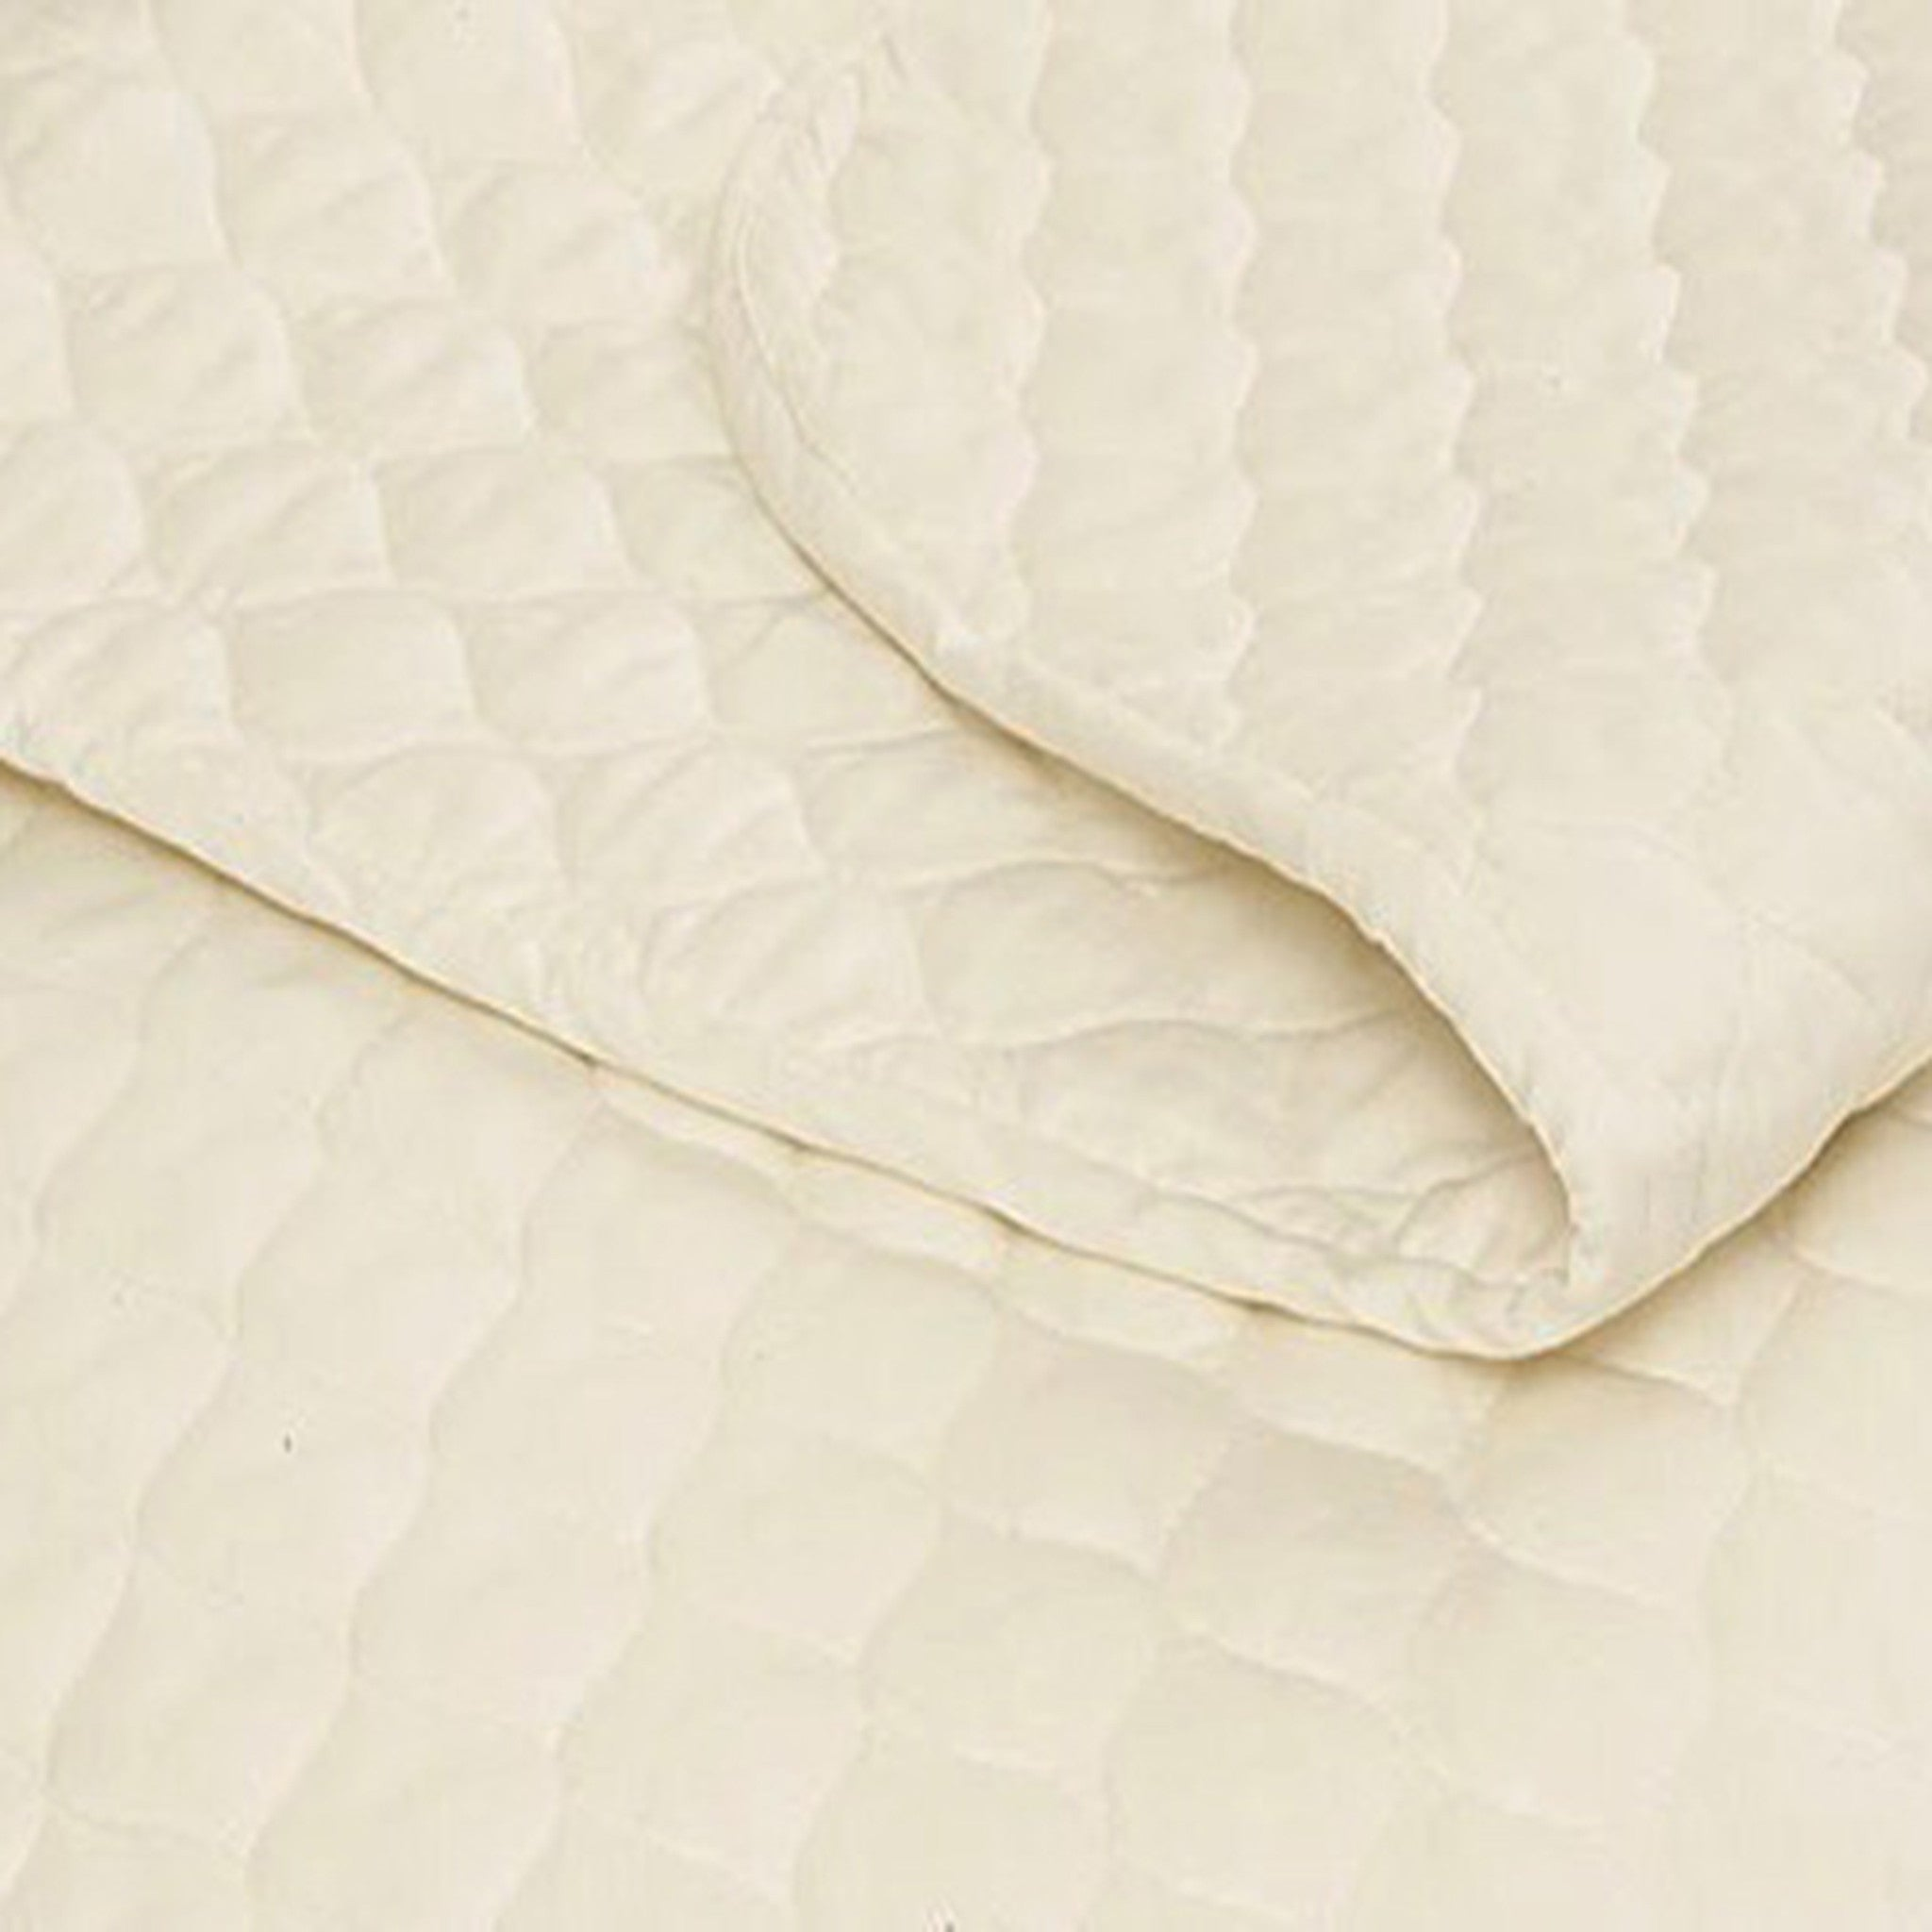 copy img cotton bistar boriya sufiyana mattress product